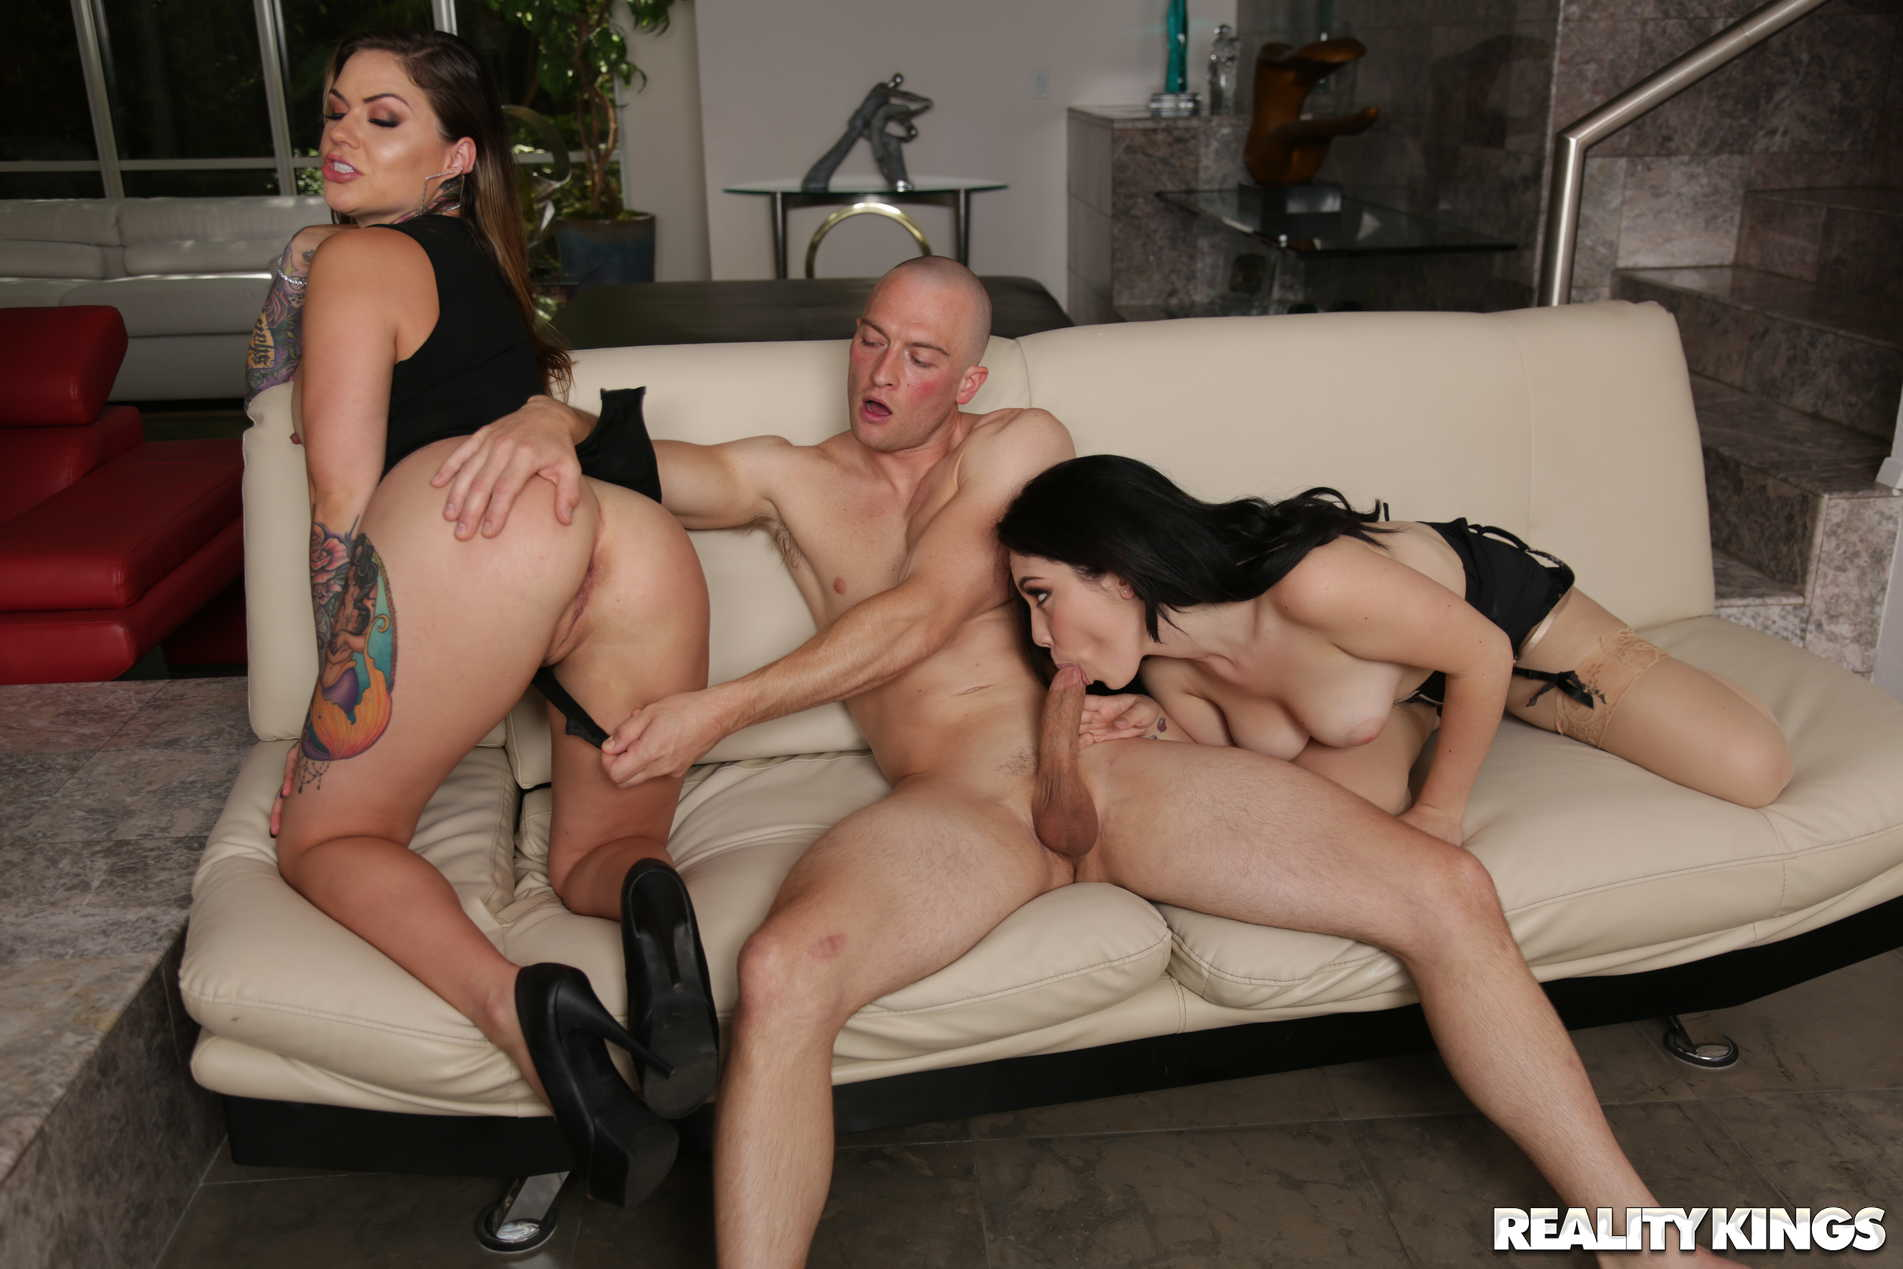 Reality Kings 'Competitive Casting' starring Karmen Karma (Photo 190)